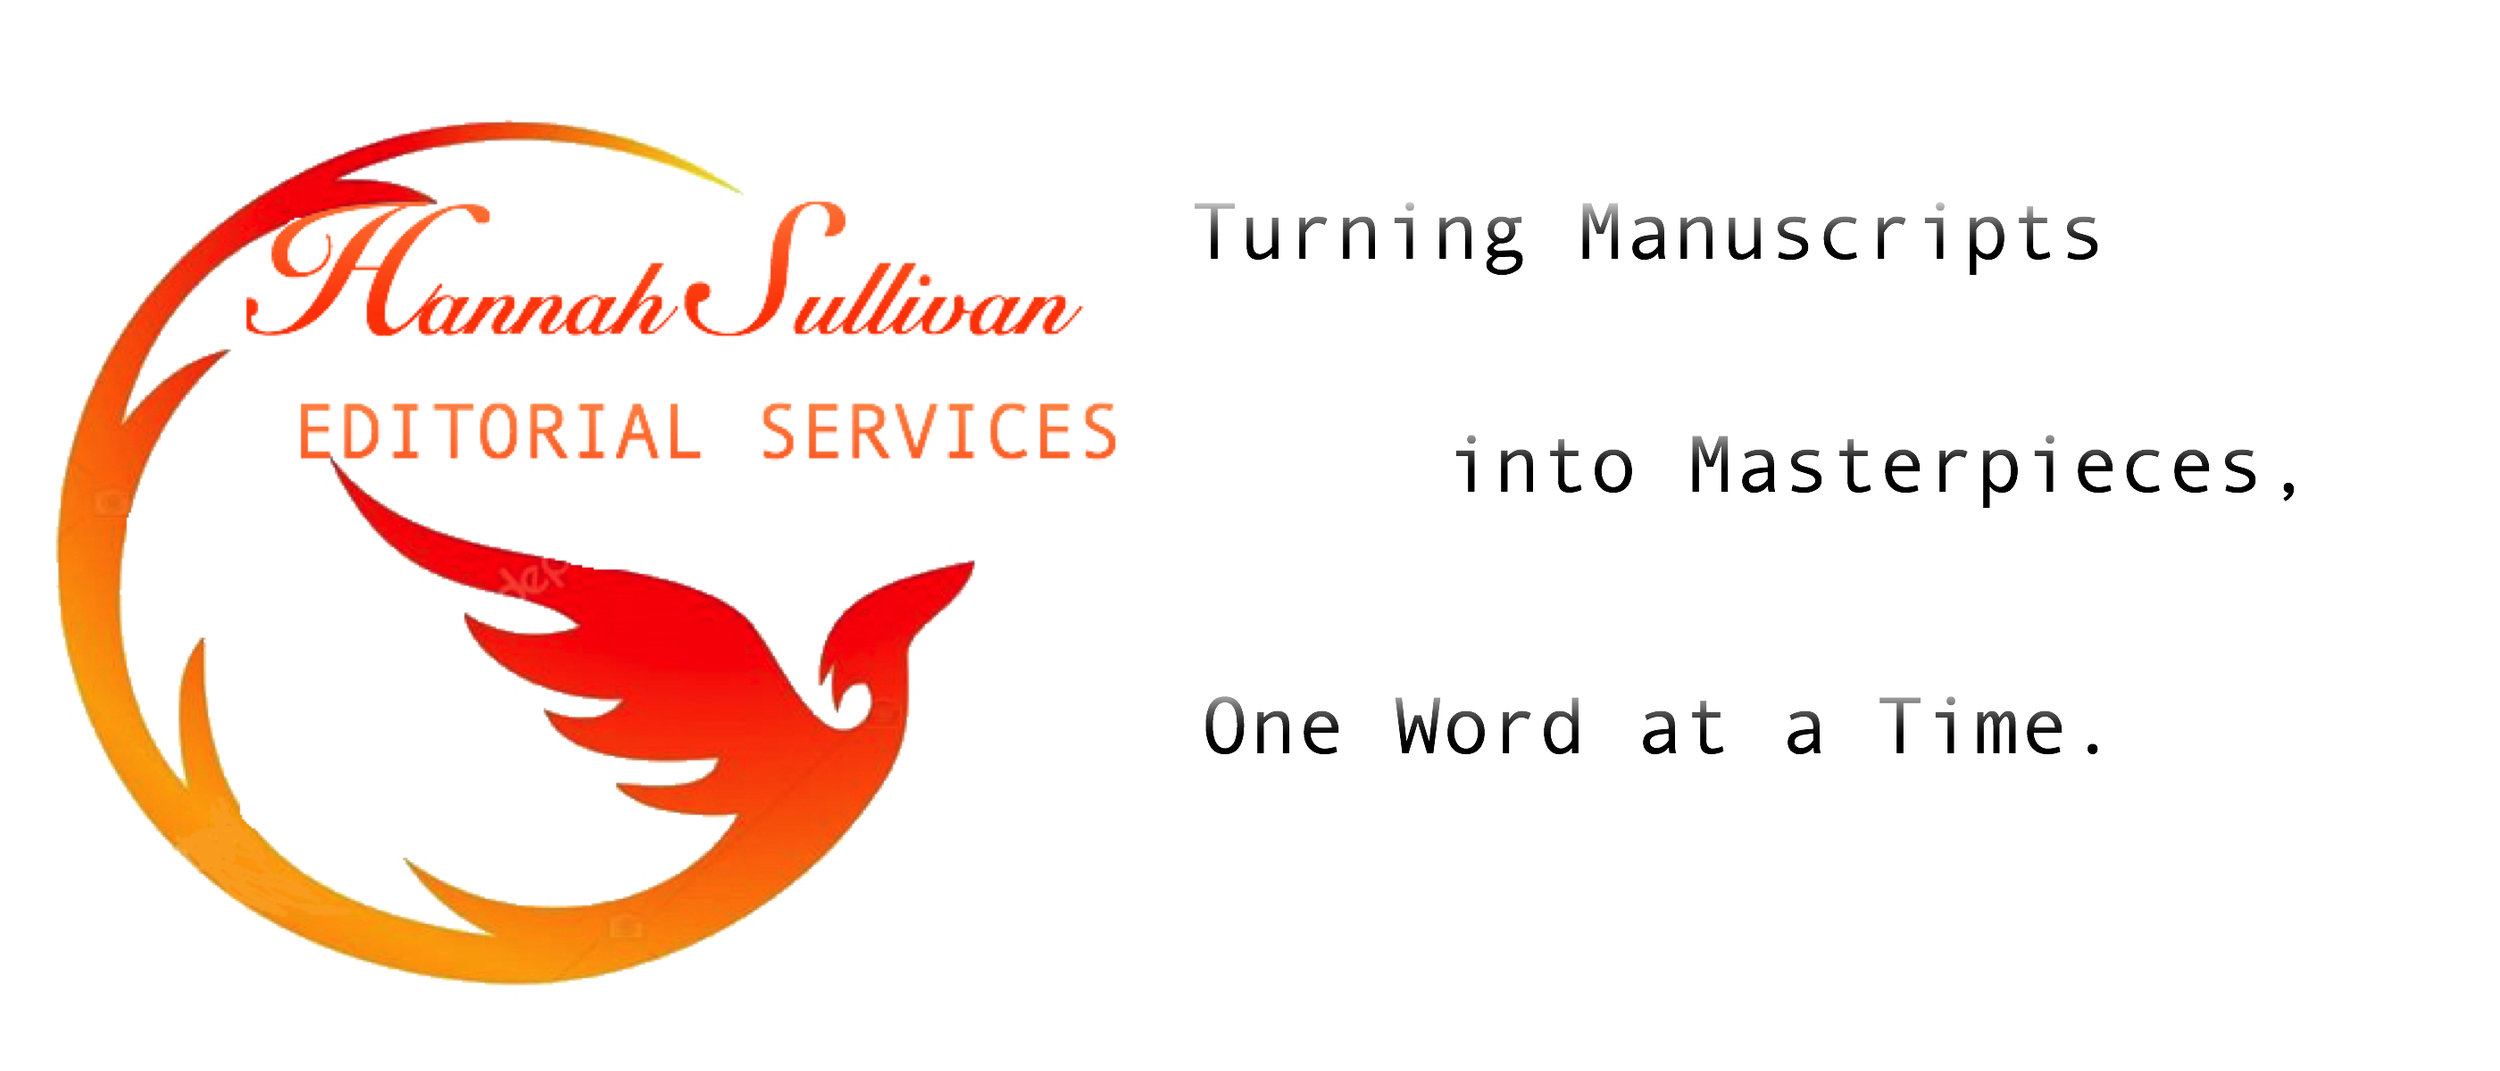 Hannah Sullivan Editorial Services